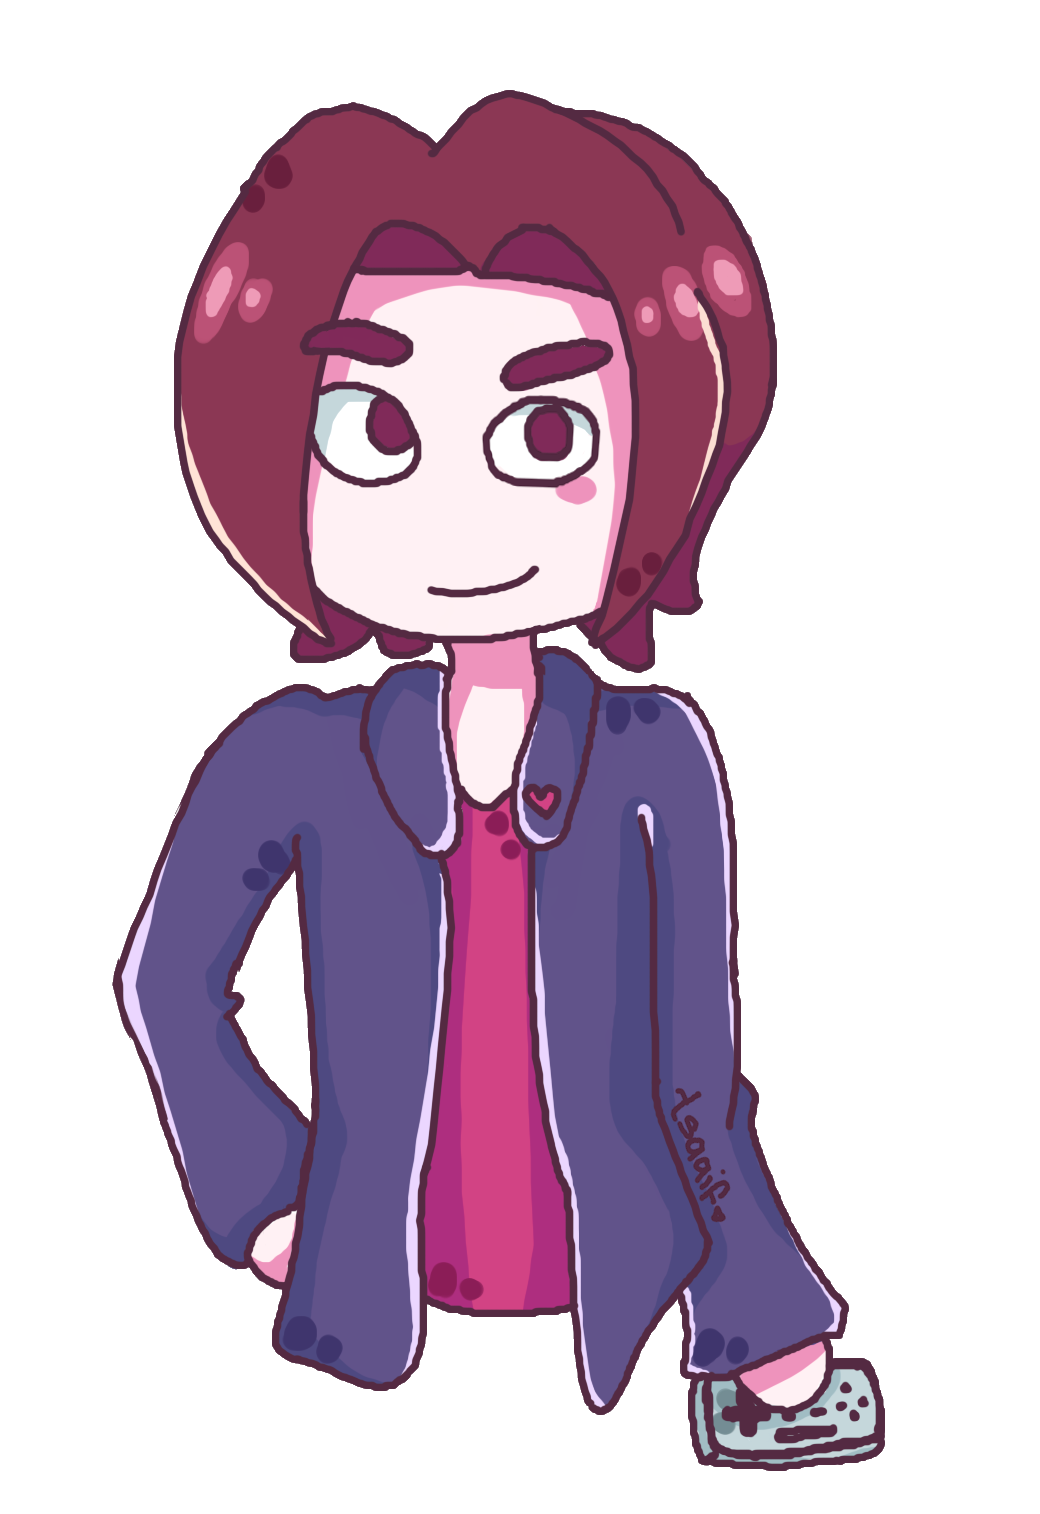 Egoraptor drawing cartoon. For mariotwo by tsaaif